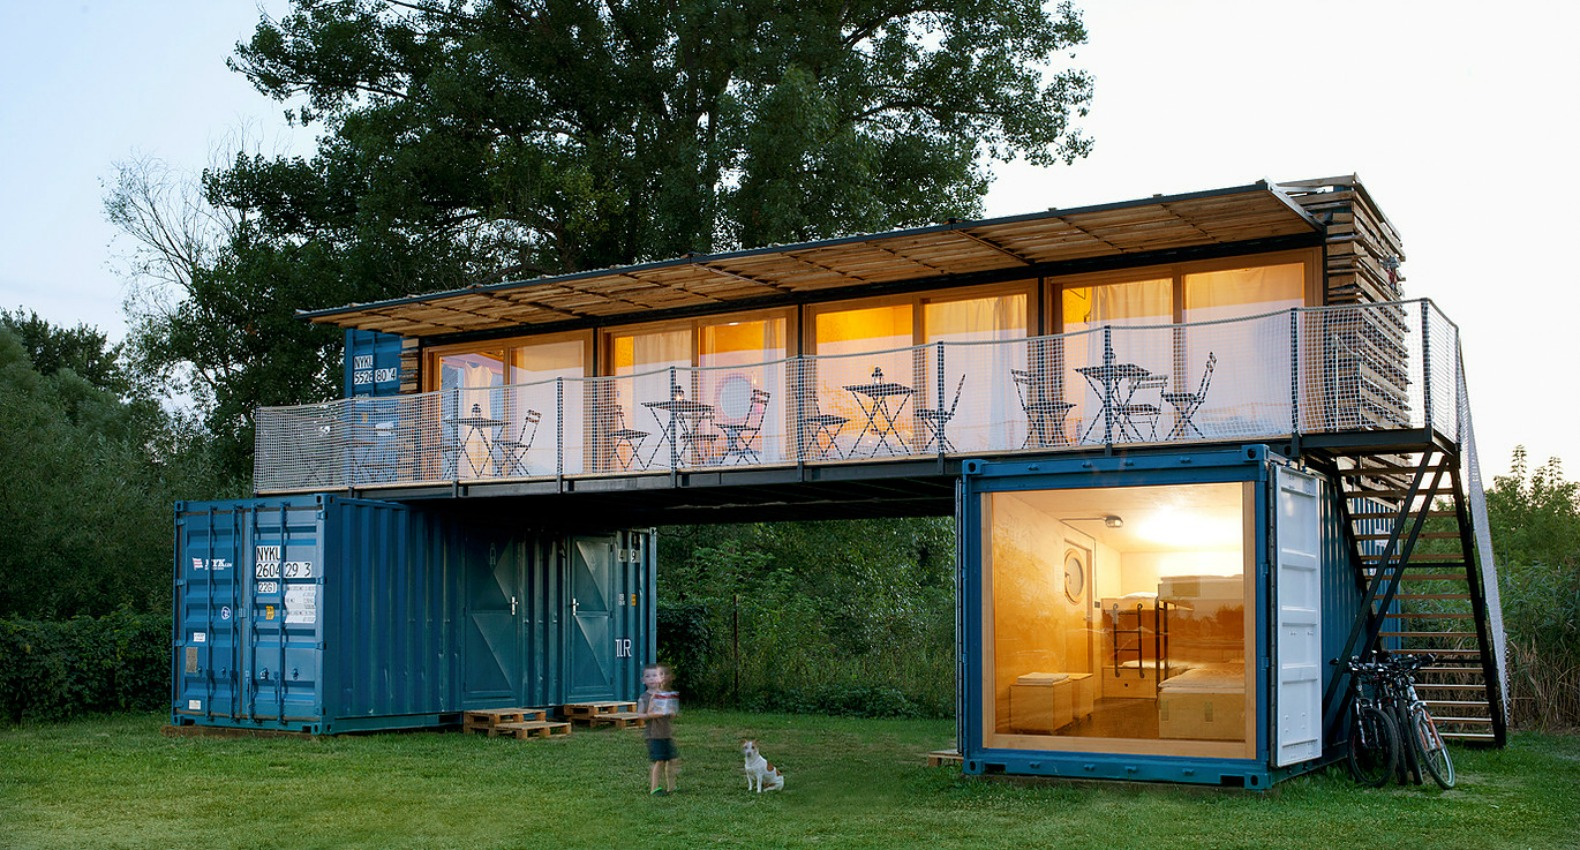 Container Building shipping container building | inhabitat - green design, innovation